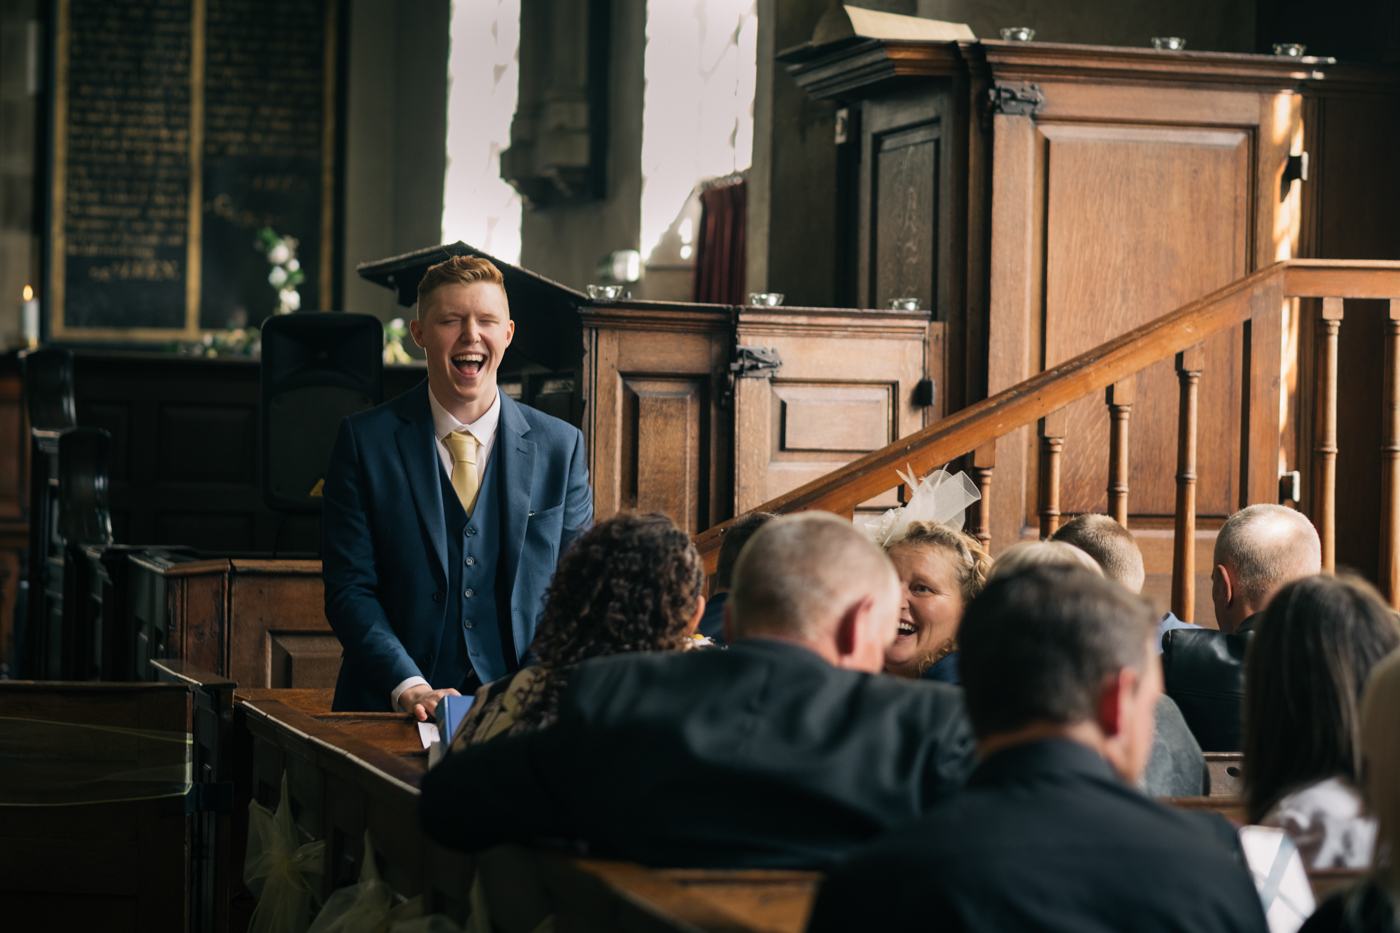 Image of groom laughing with guests at wedding in yorkshire